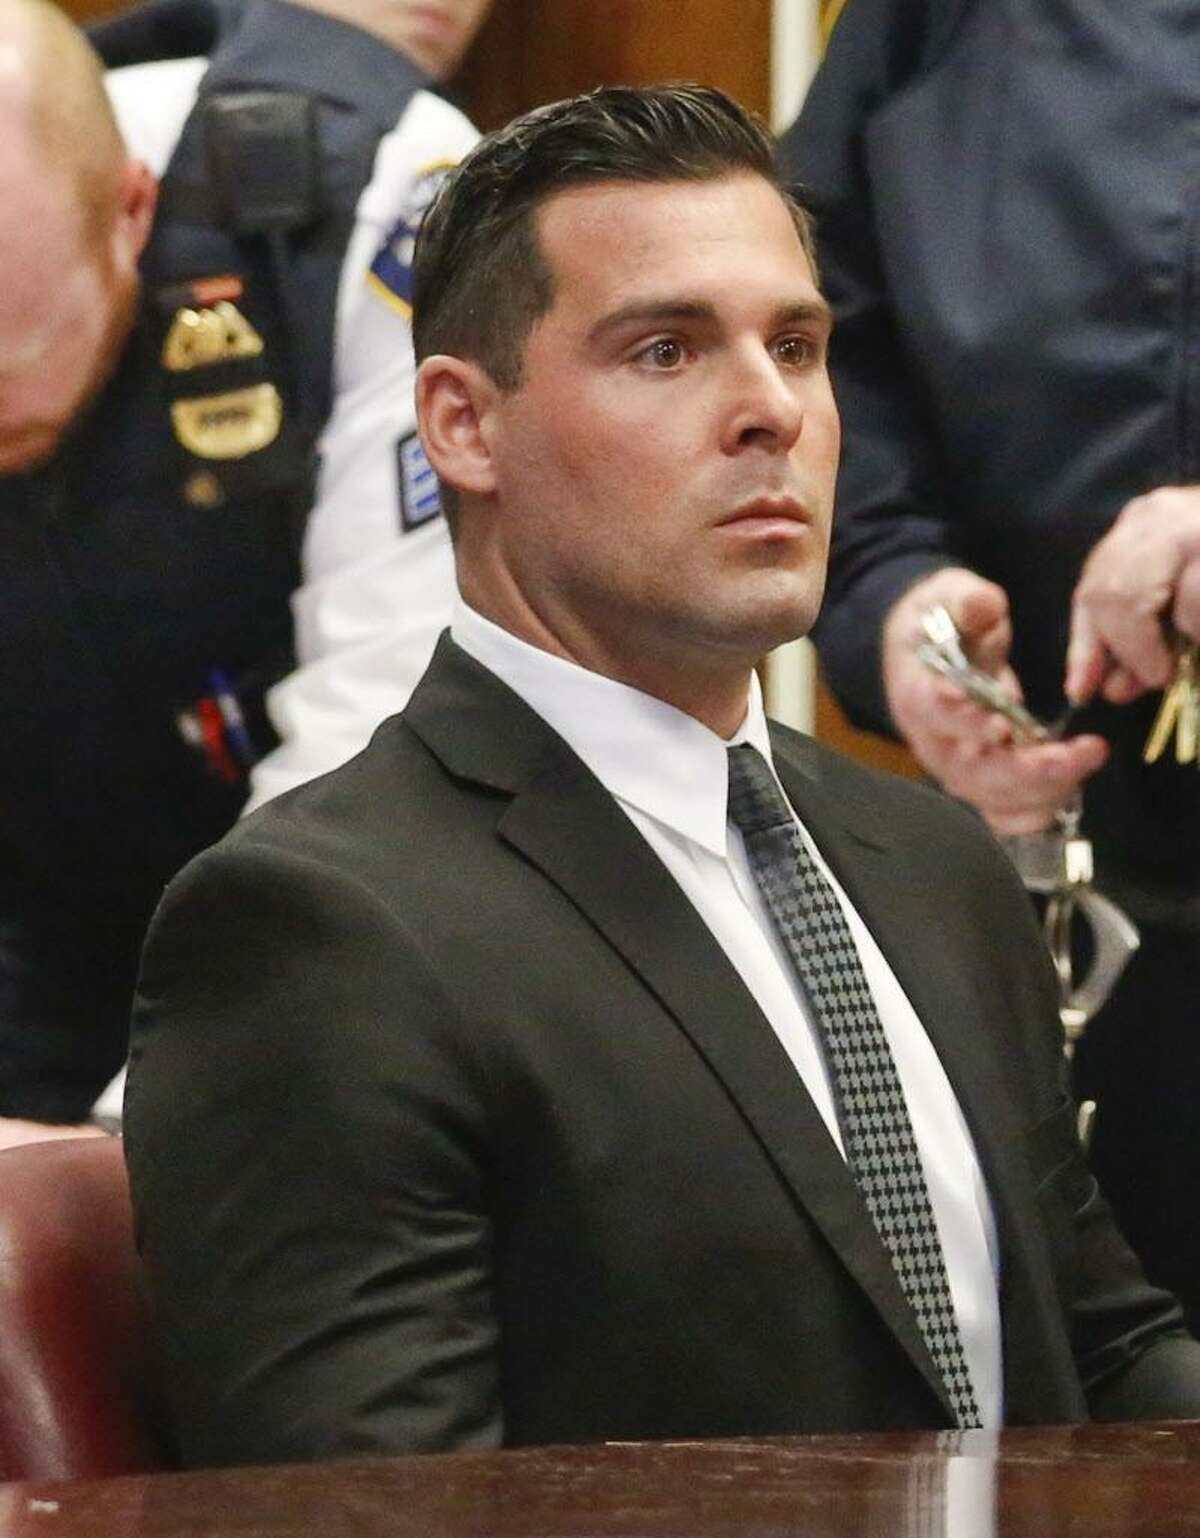 FILE - Lawrence Dilione, 28, of New Jersey, listens as his lawyer speaks during his hearing in criminal court, Tuesday Dec. 13, 2016, in New York.